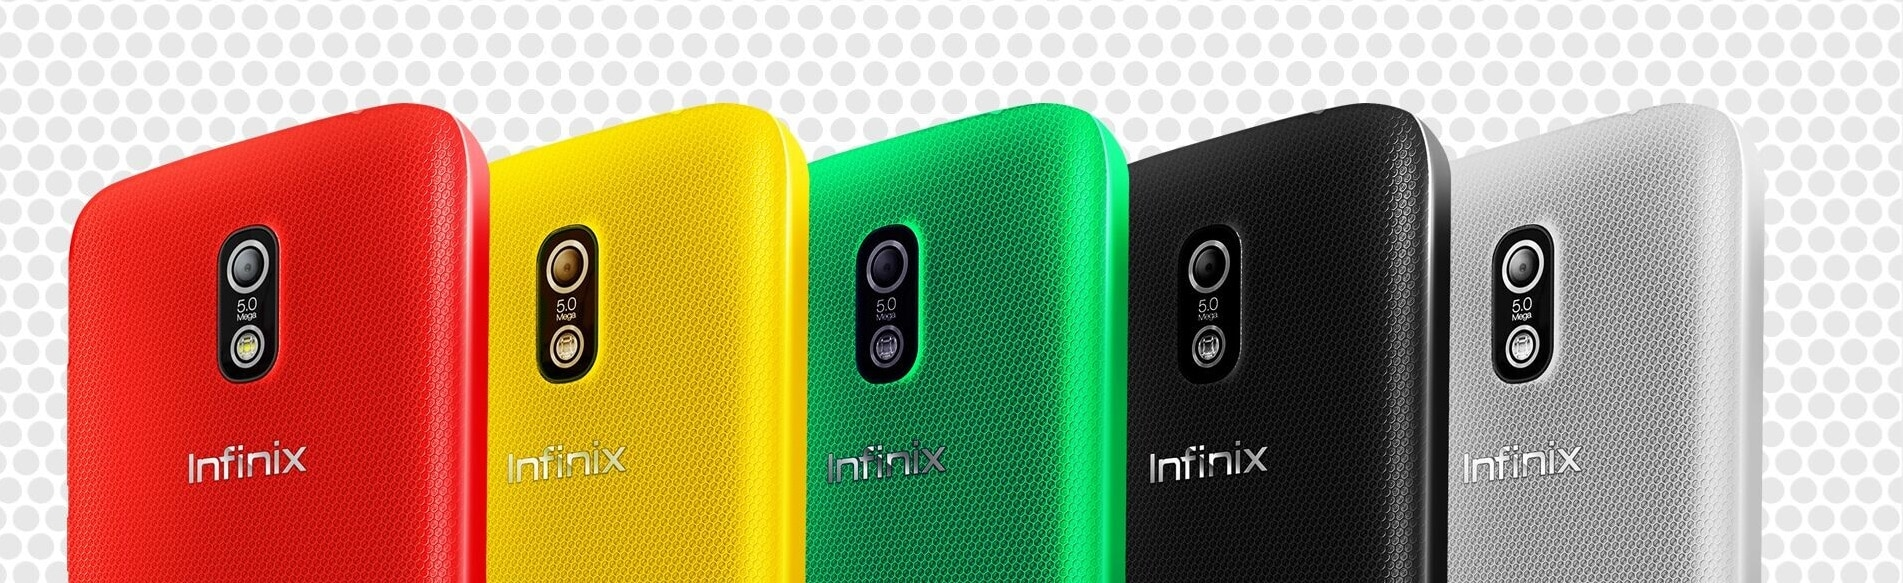 list of all the infinix android smartphone